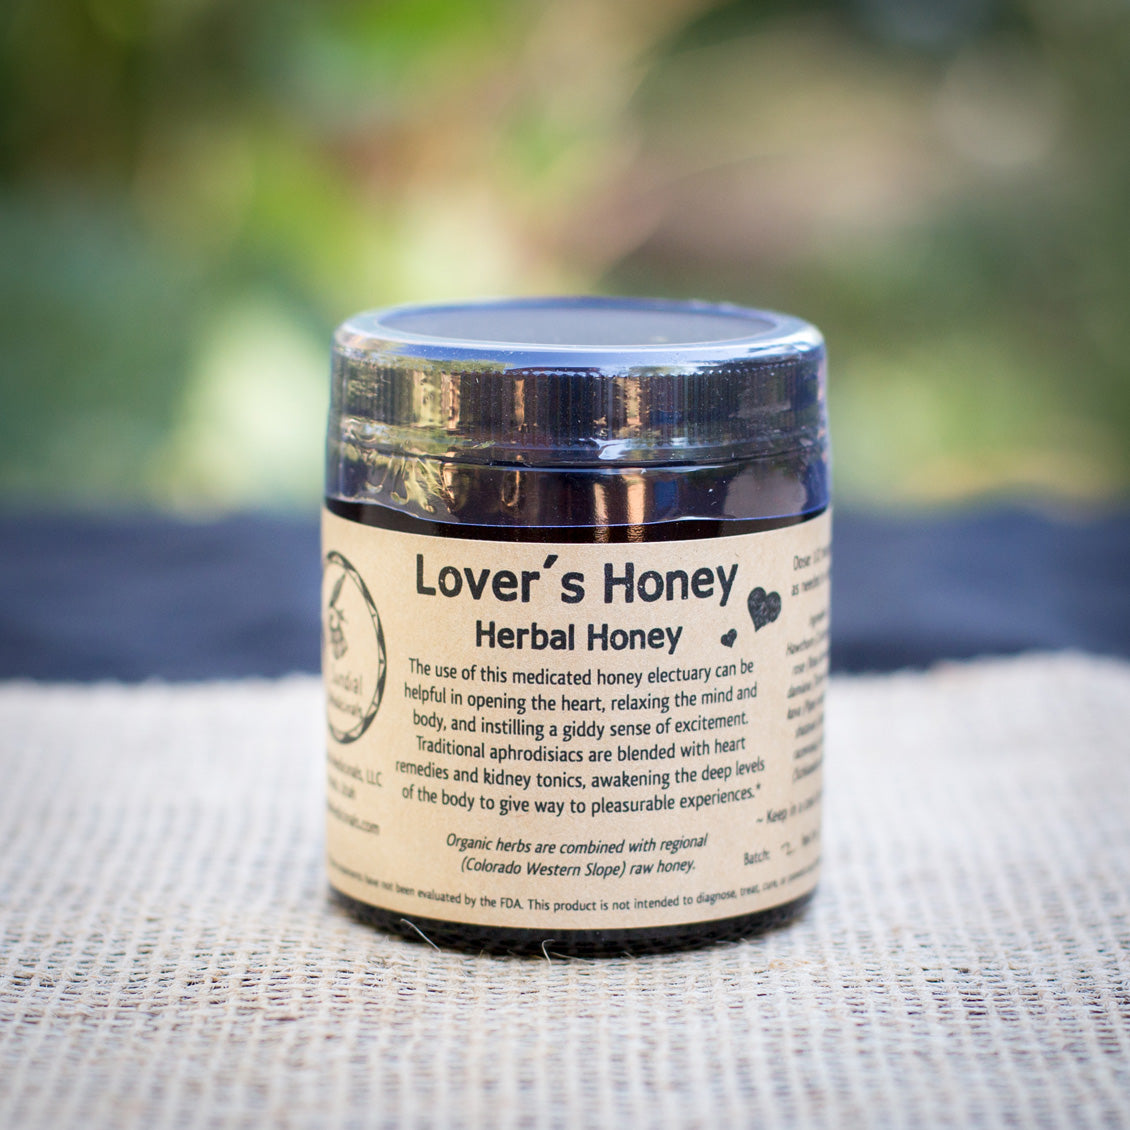 Lover's Honey